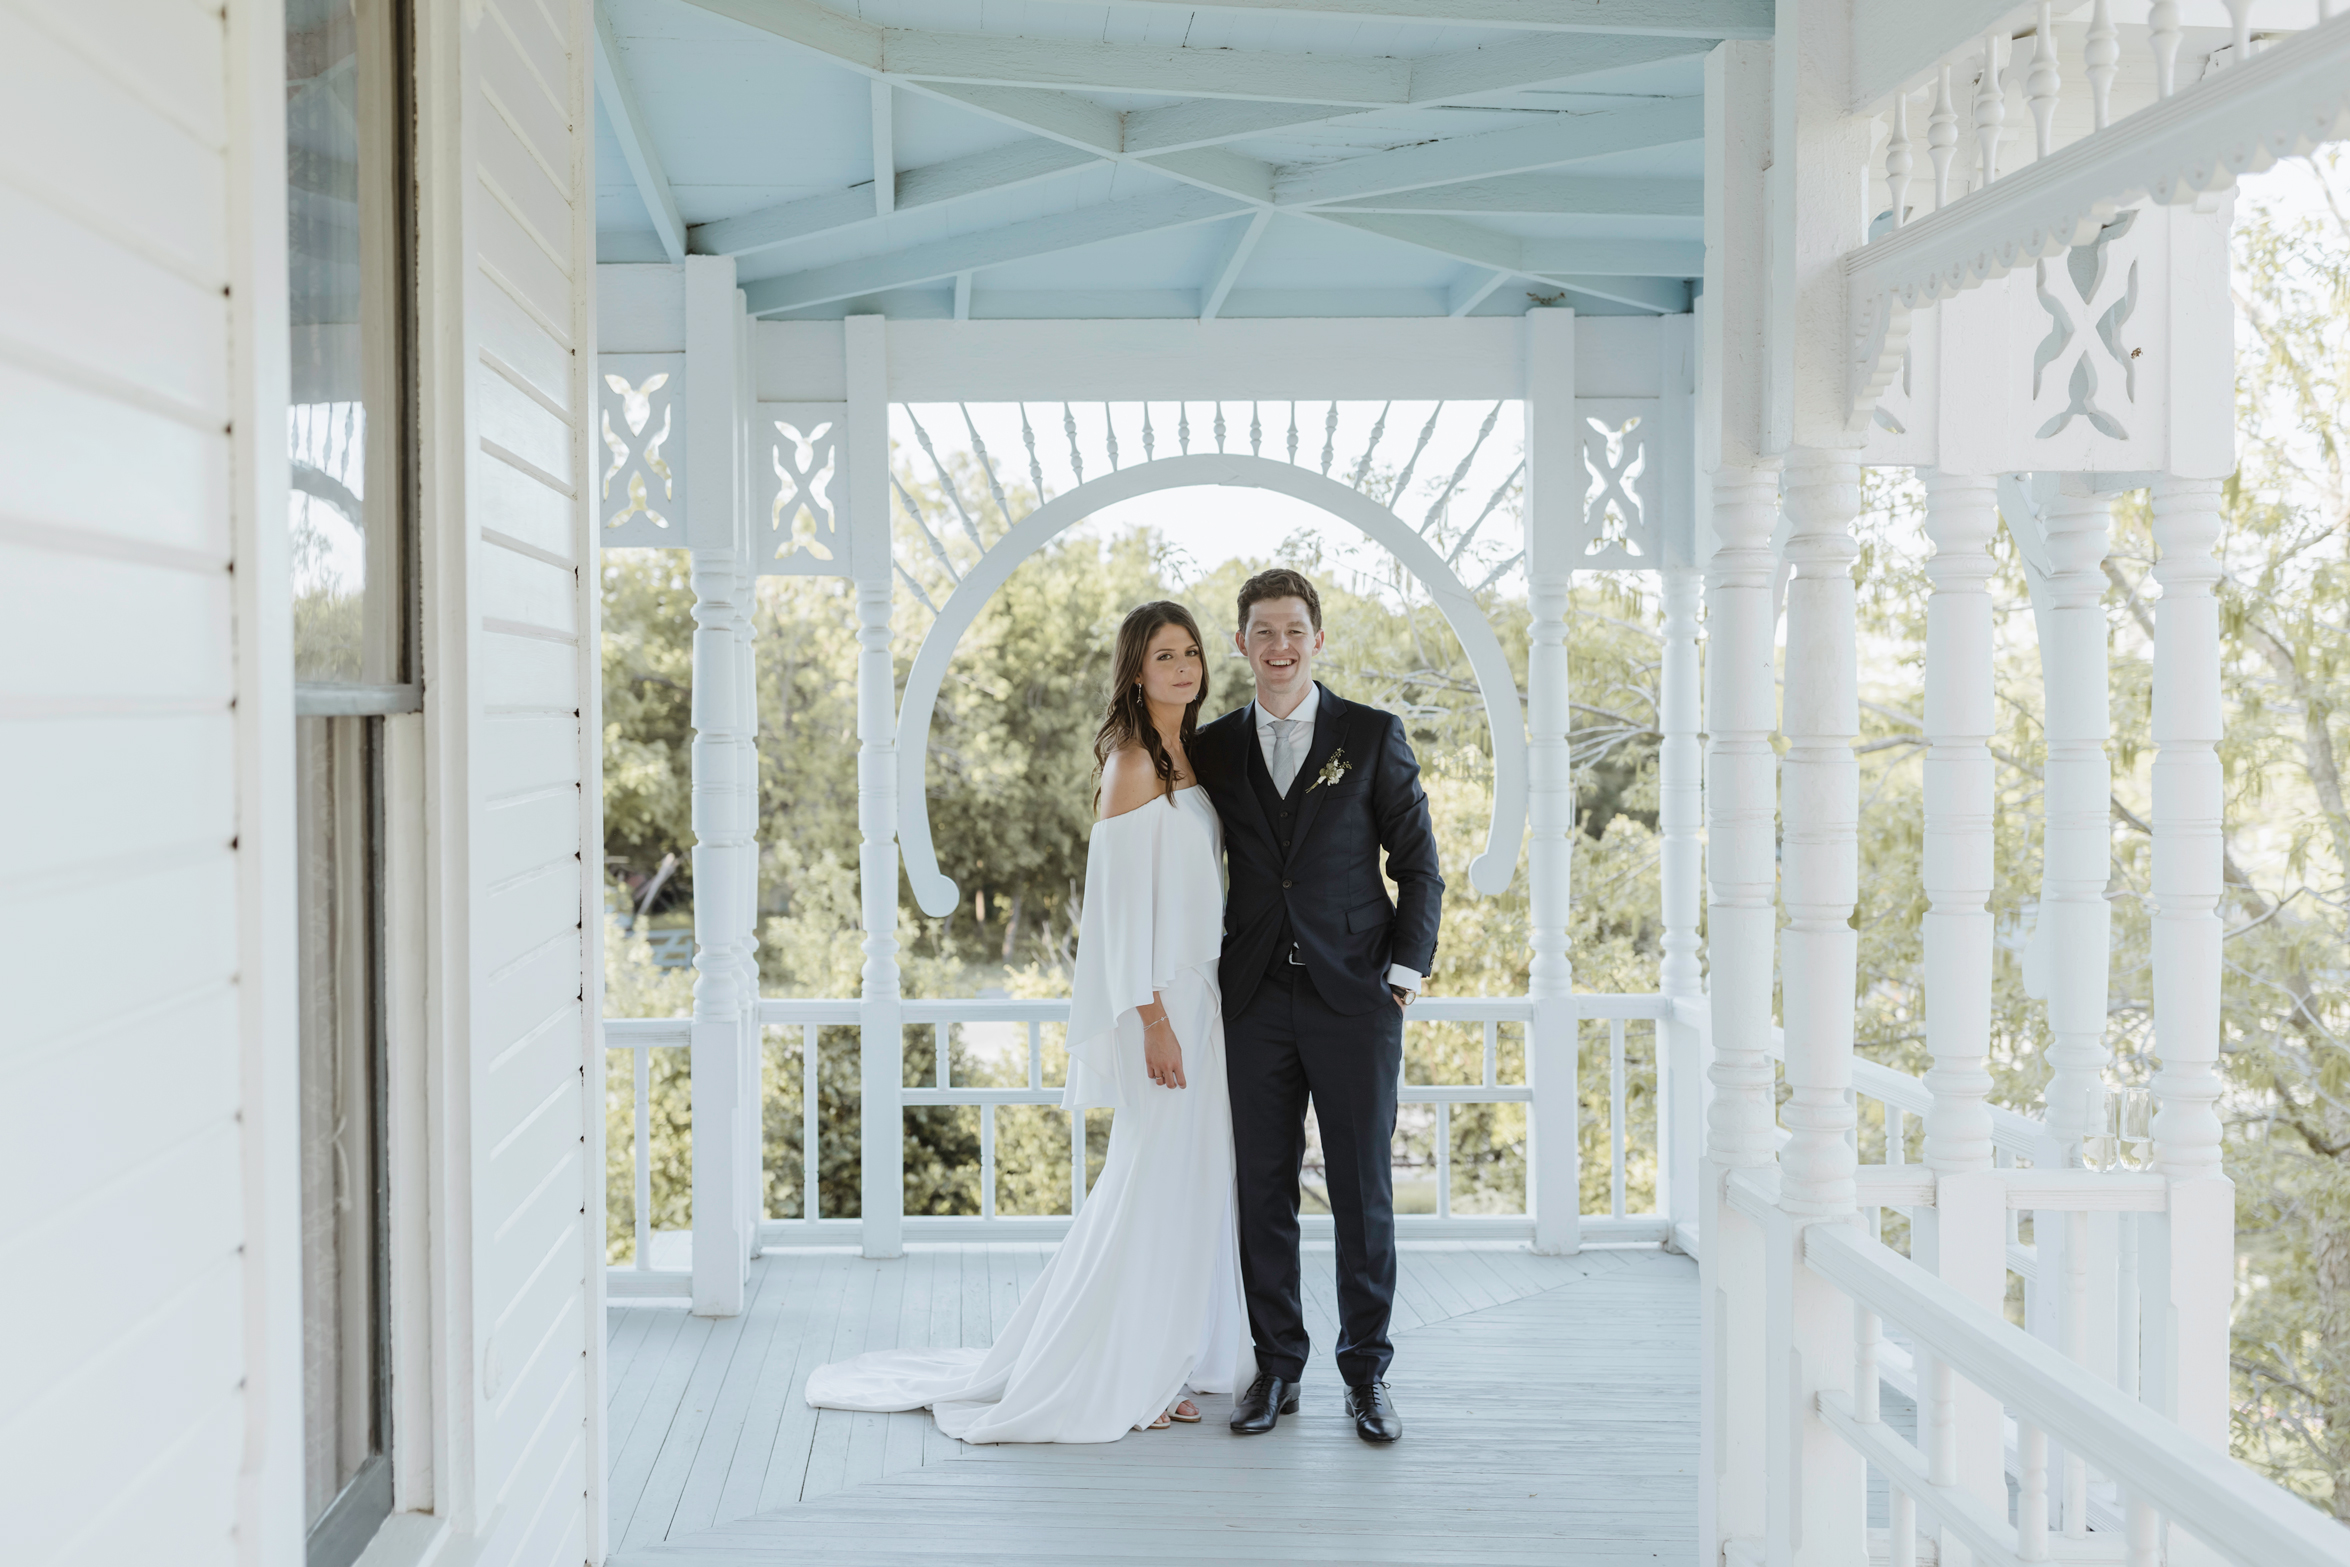 bride and groom posing on white porch outside